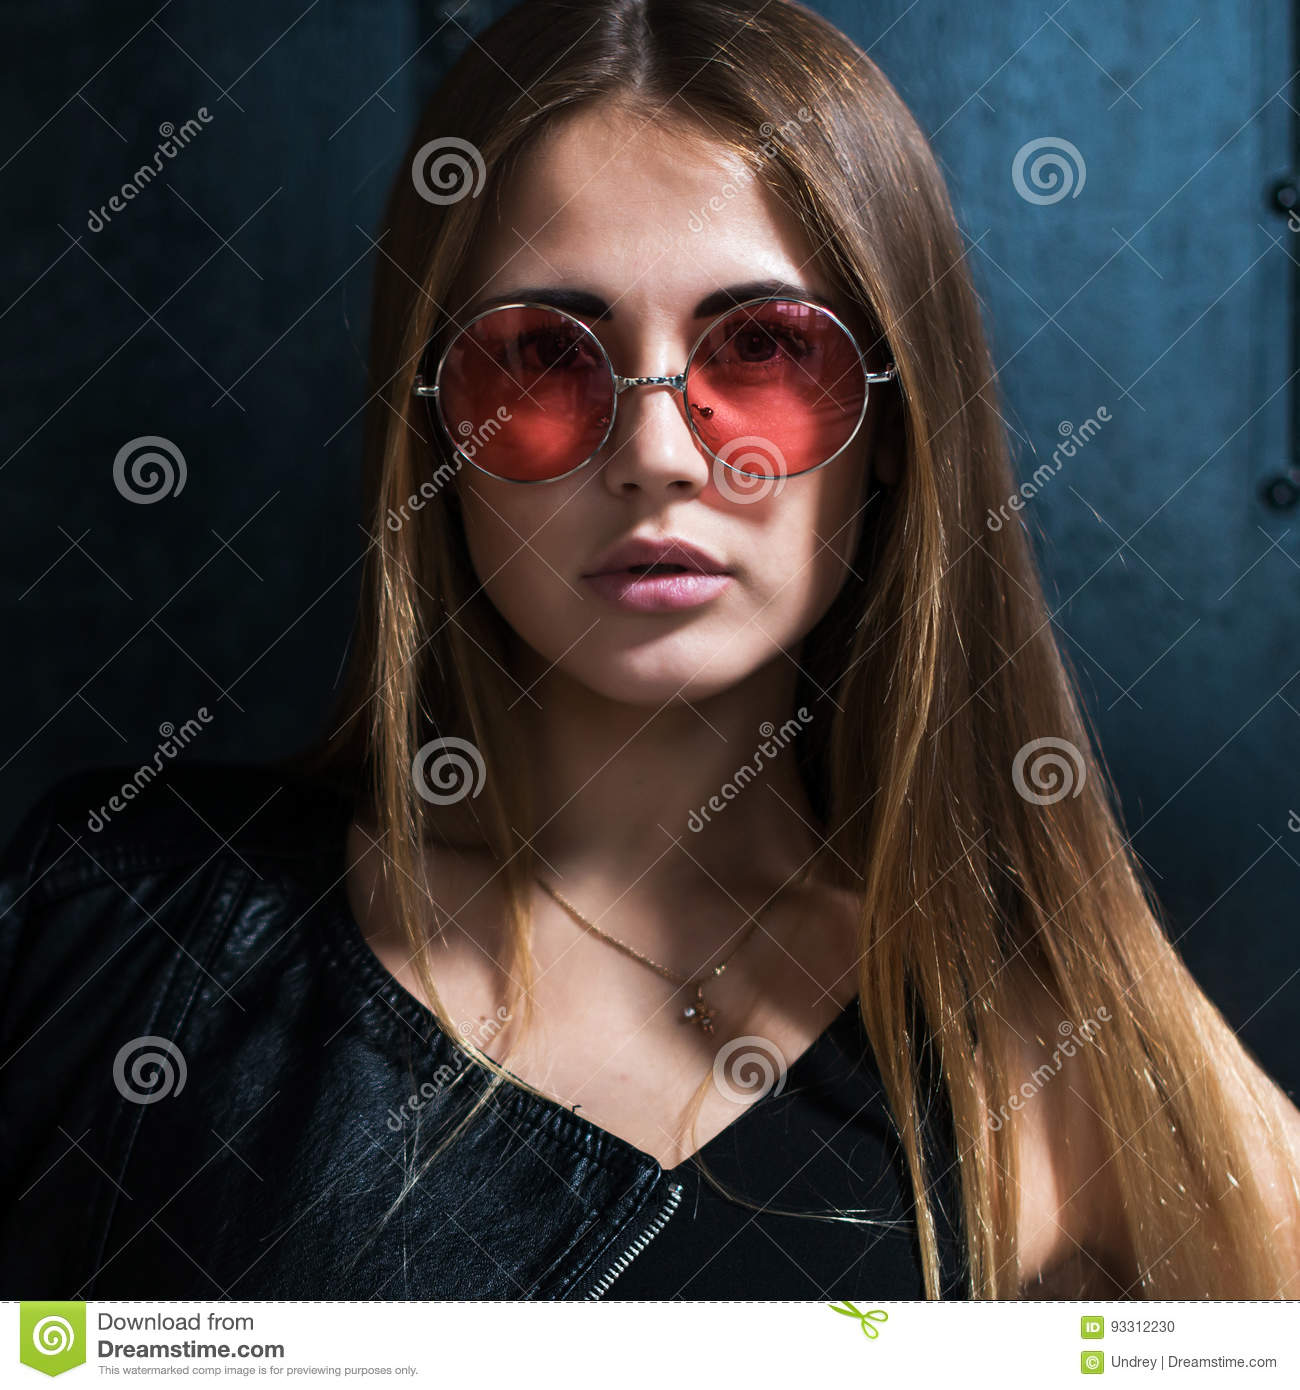 Close up face portrait of beautiful Caucasian young woman with loose hair in fashionable pink round sunglasses looking